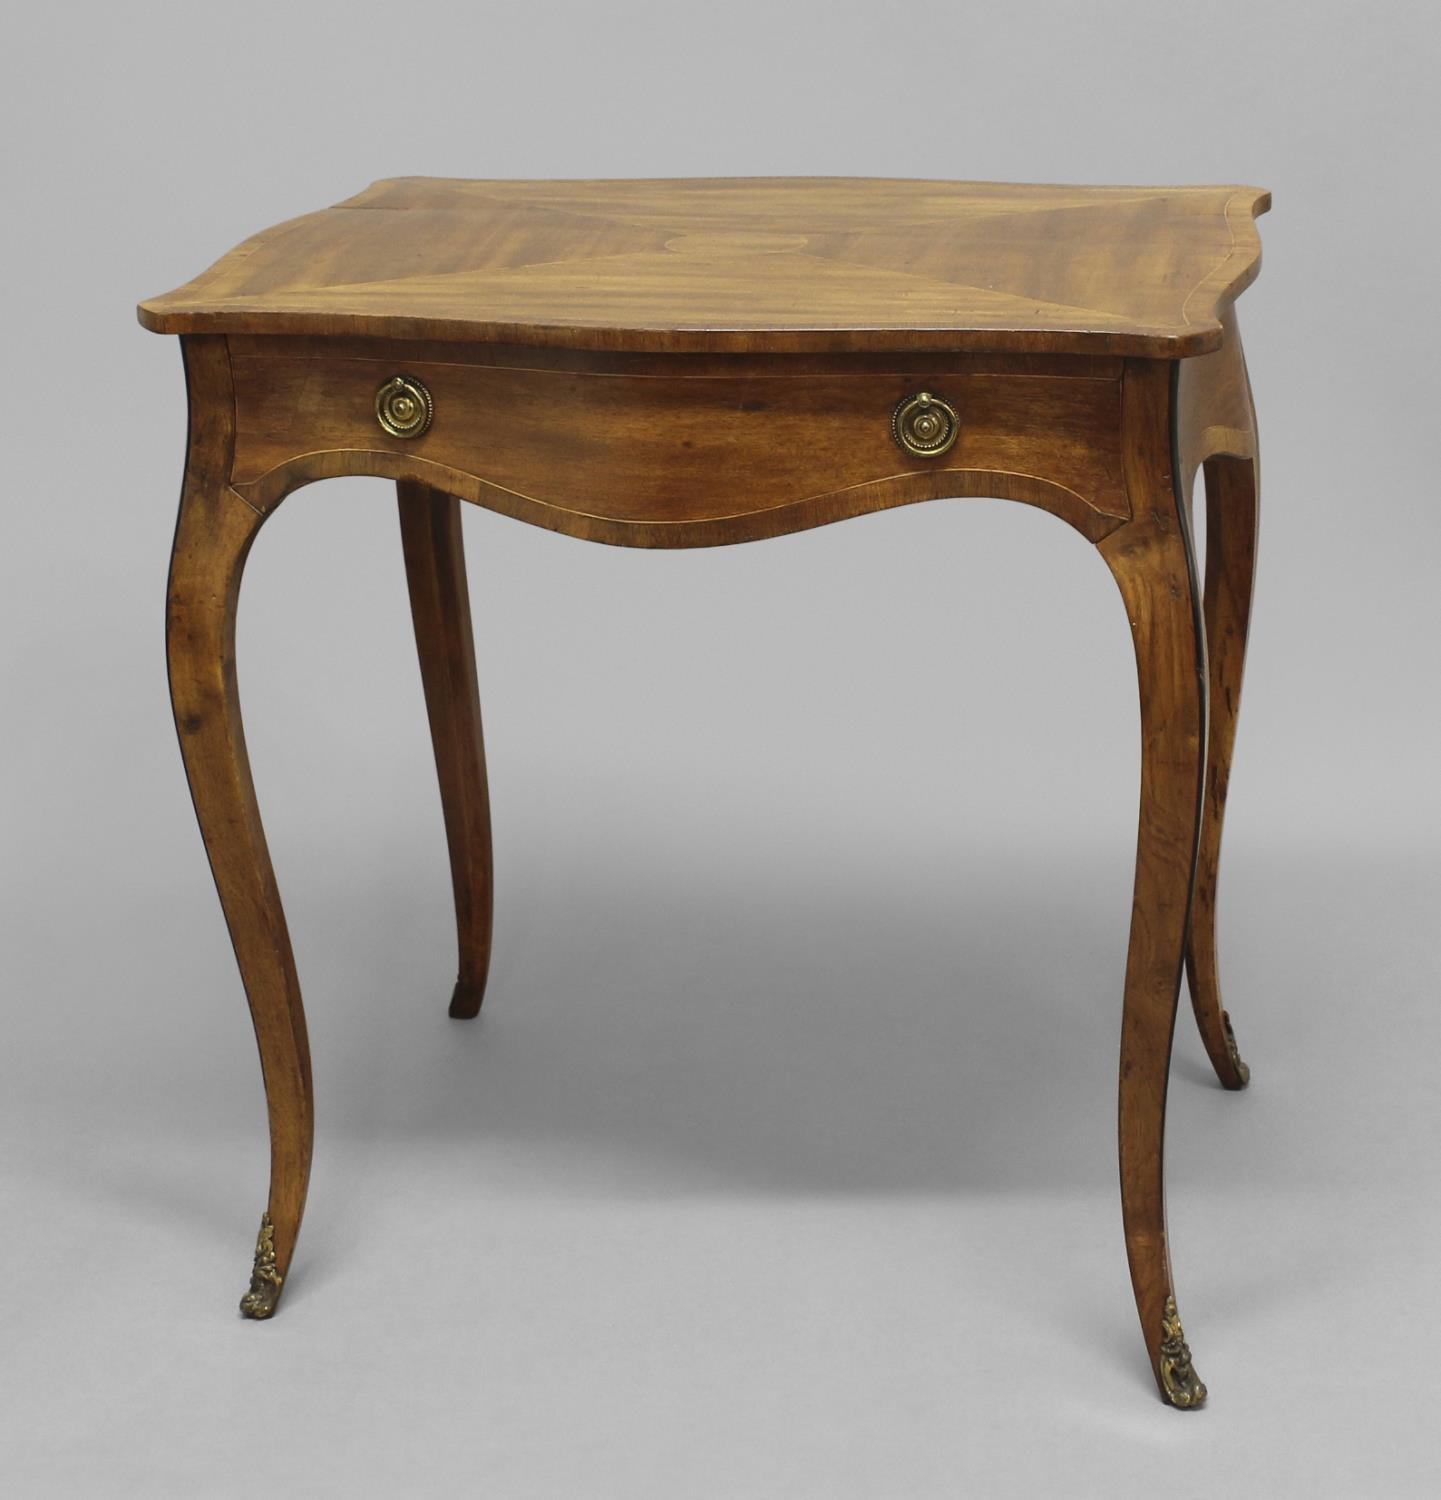 GEORGE III MAHOGANY SERPENTINE SIDE TABLE, the shaped rectangular top above a single drawer on - Image 2 of 2